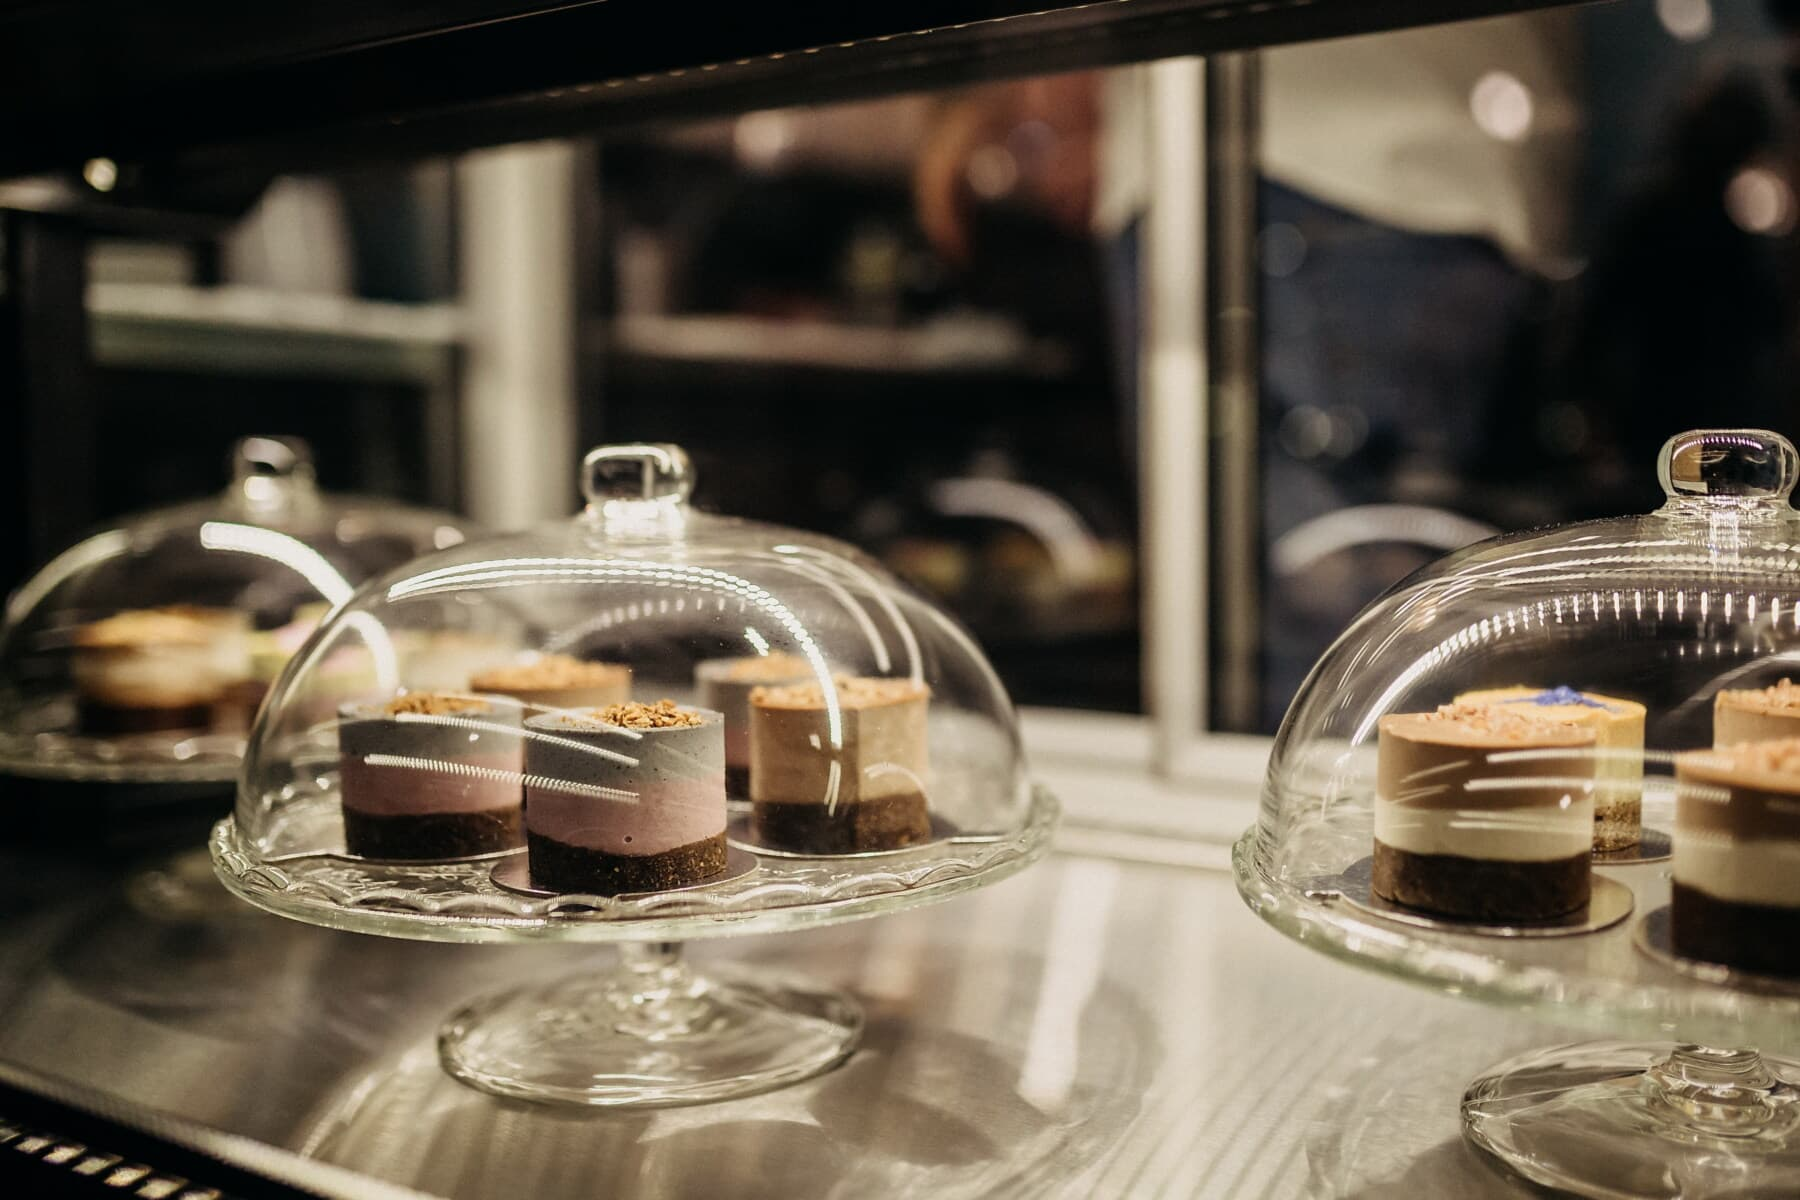 dessert, cookies, cake shop, underneath, glass, bell, indoors, restaurant, drink, tableware